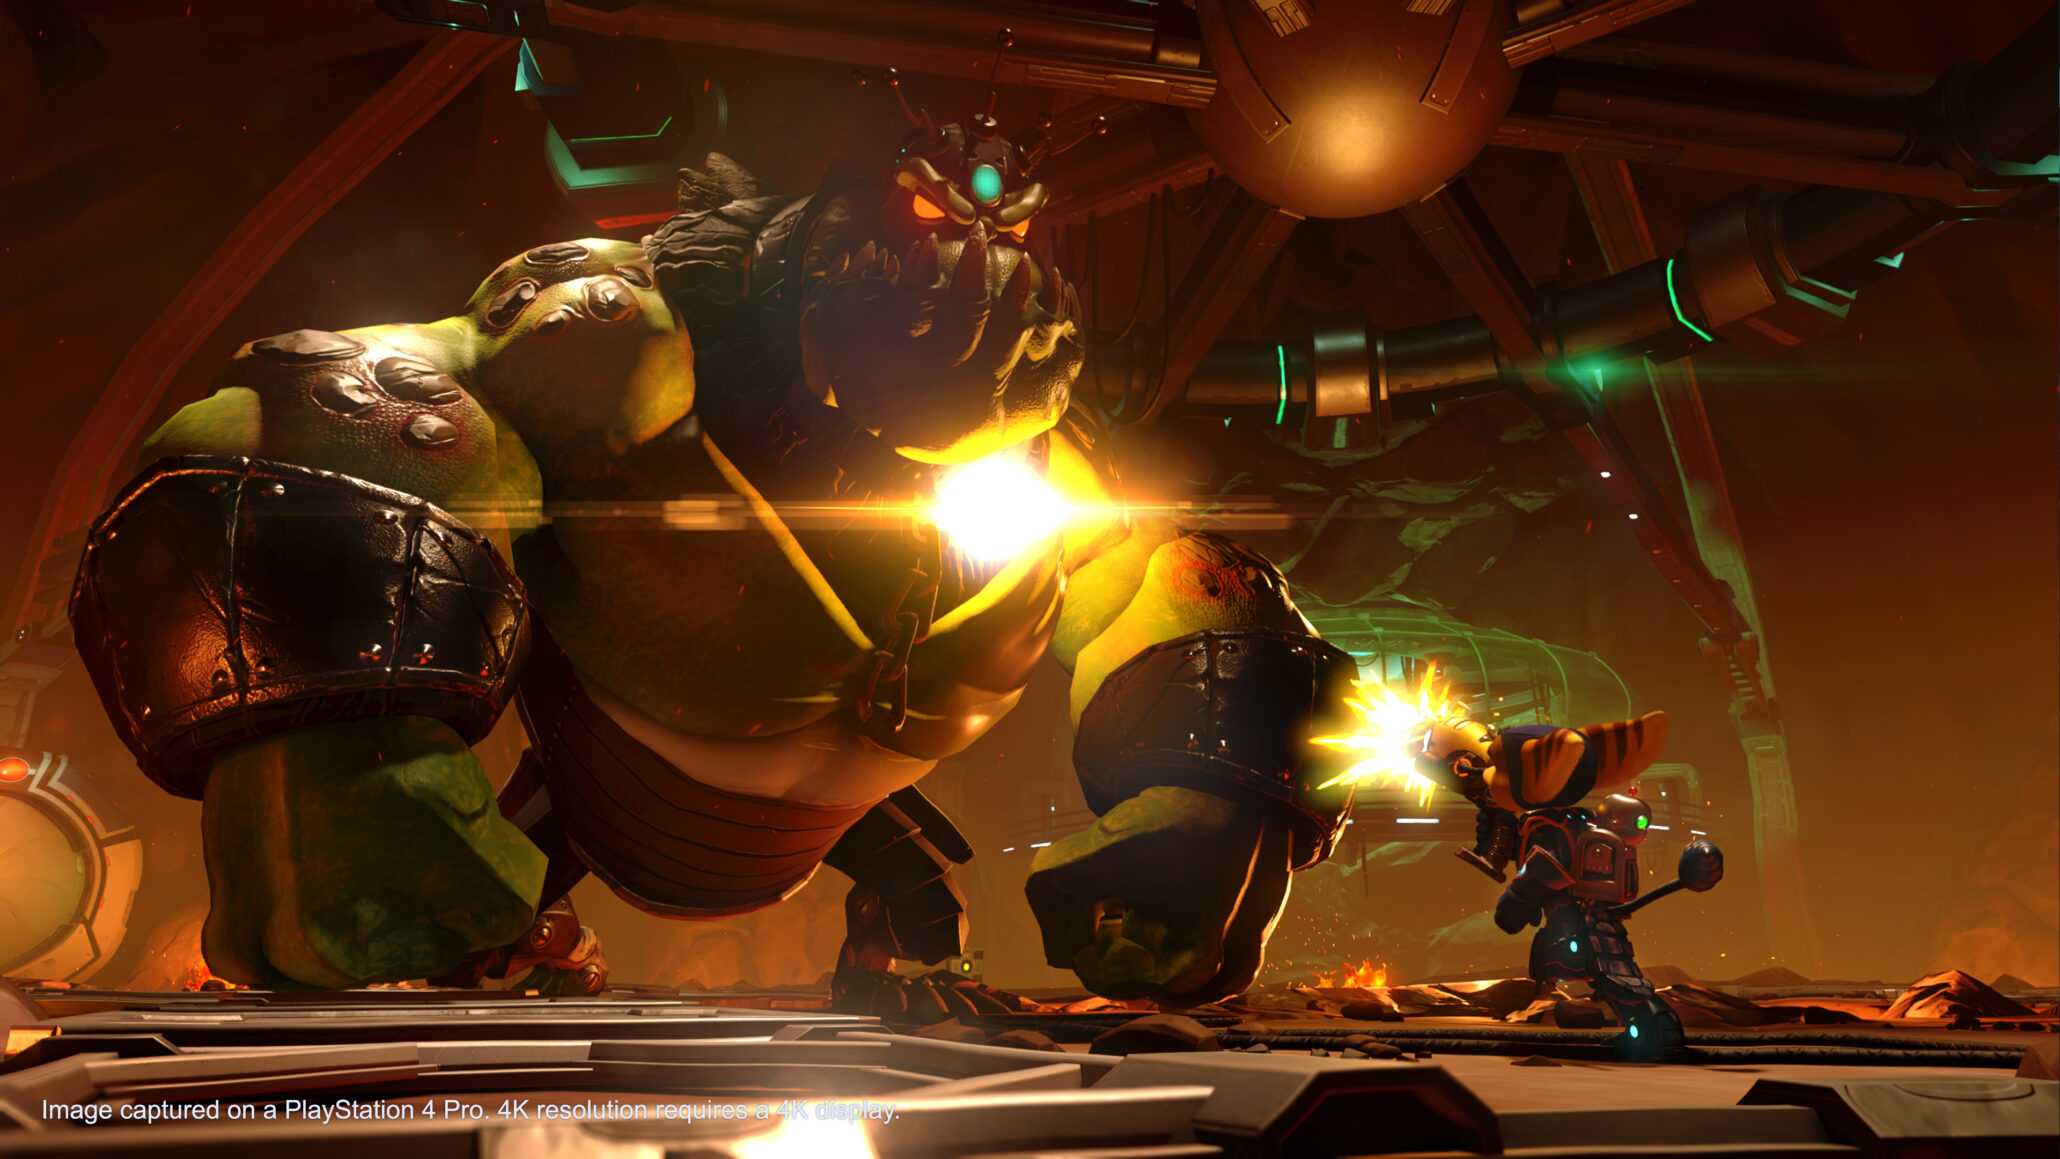 Ratchet & Clank PS4 Pro Update Announced